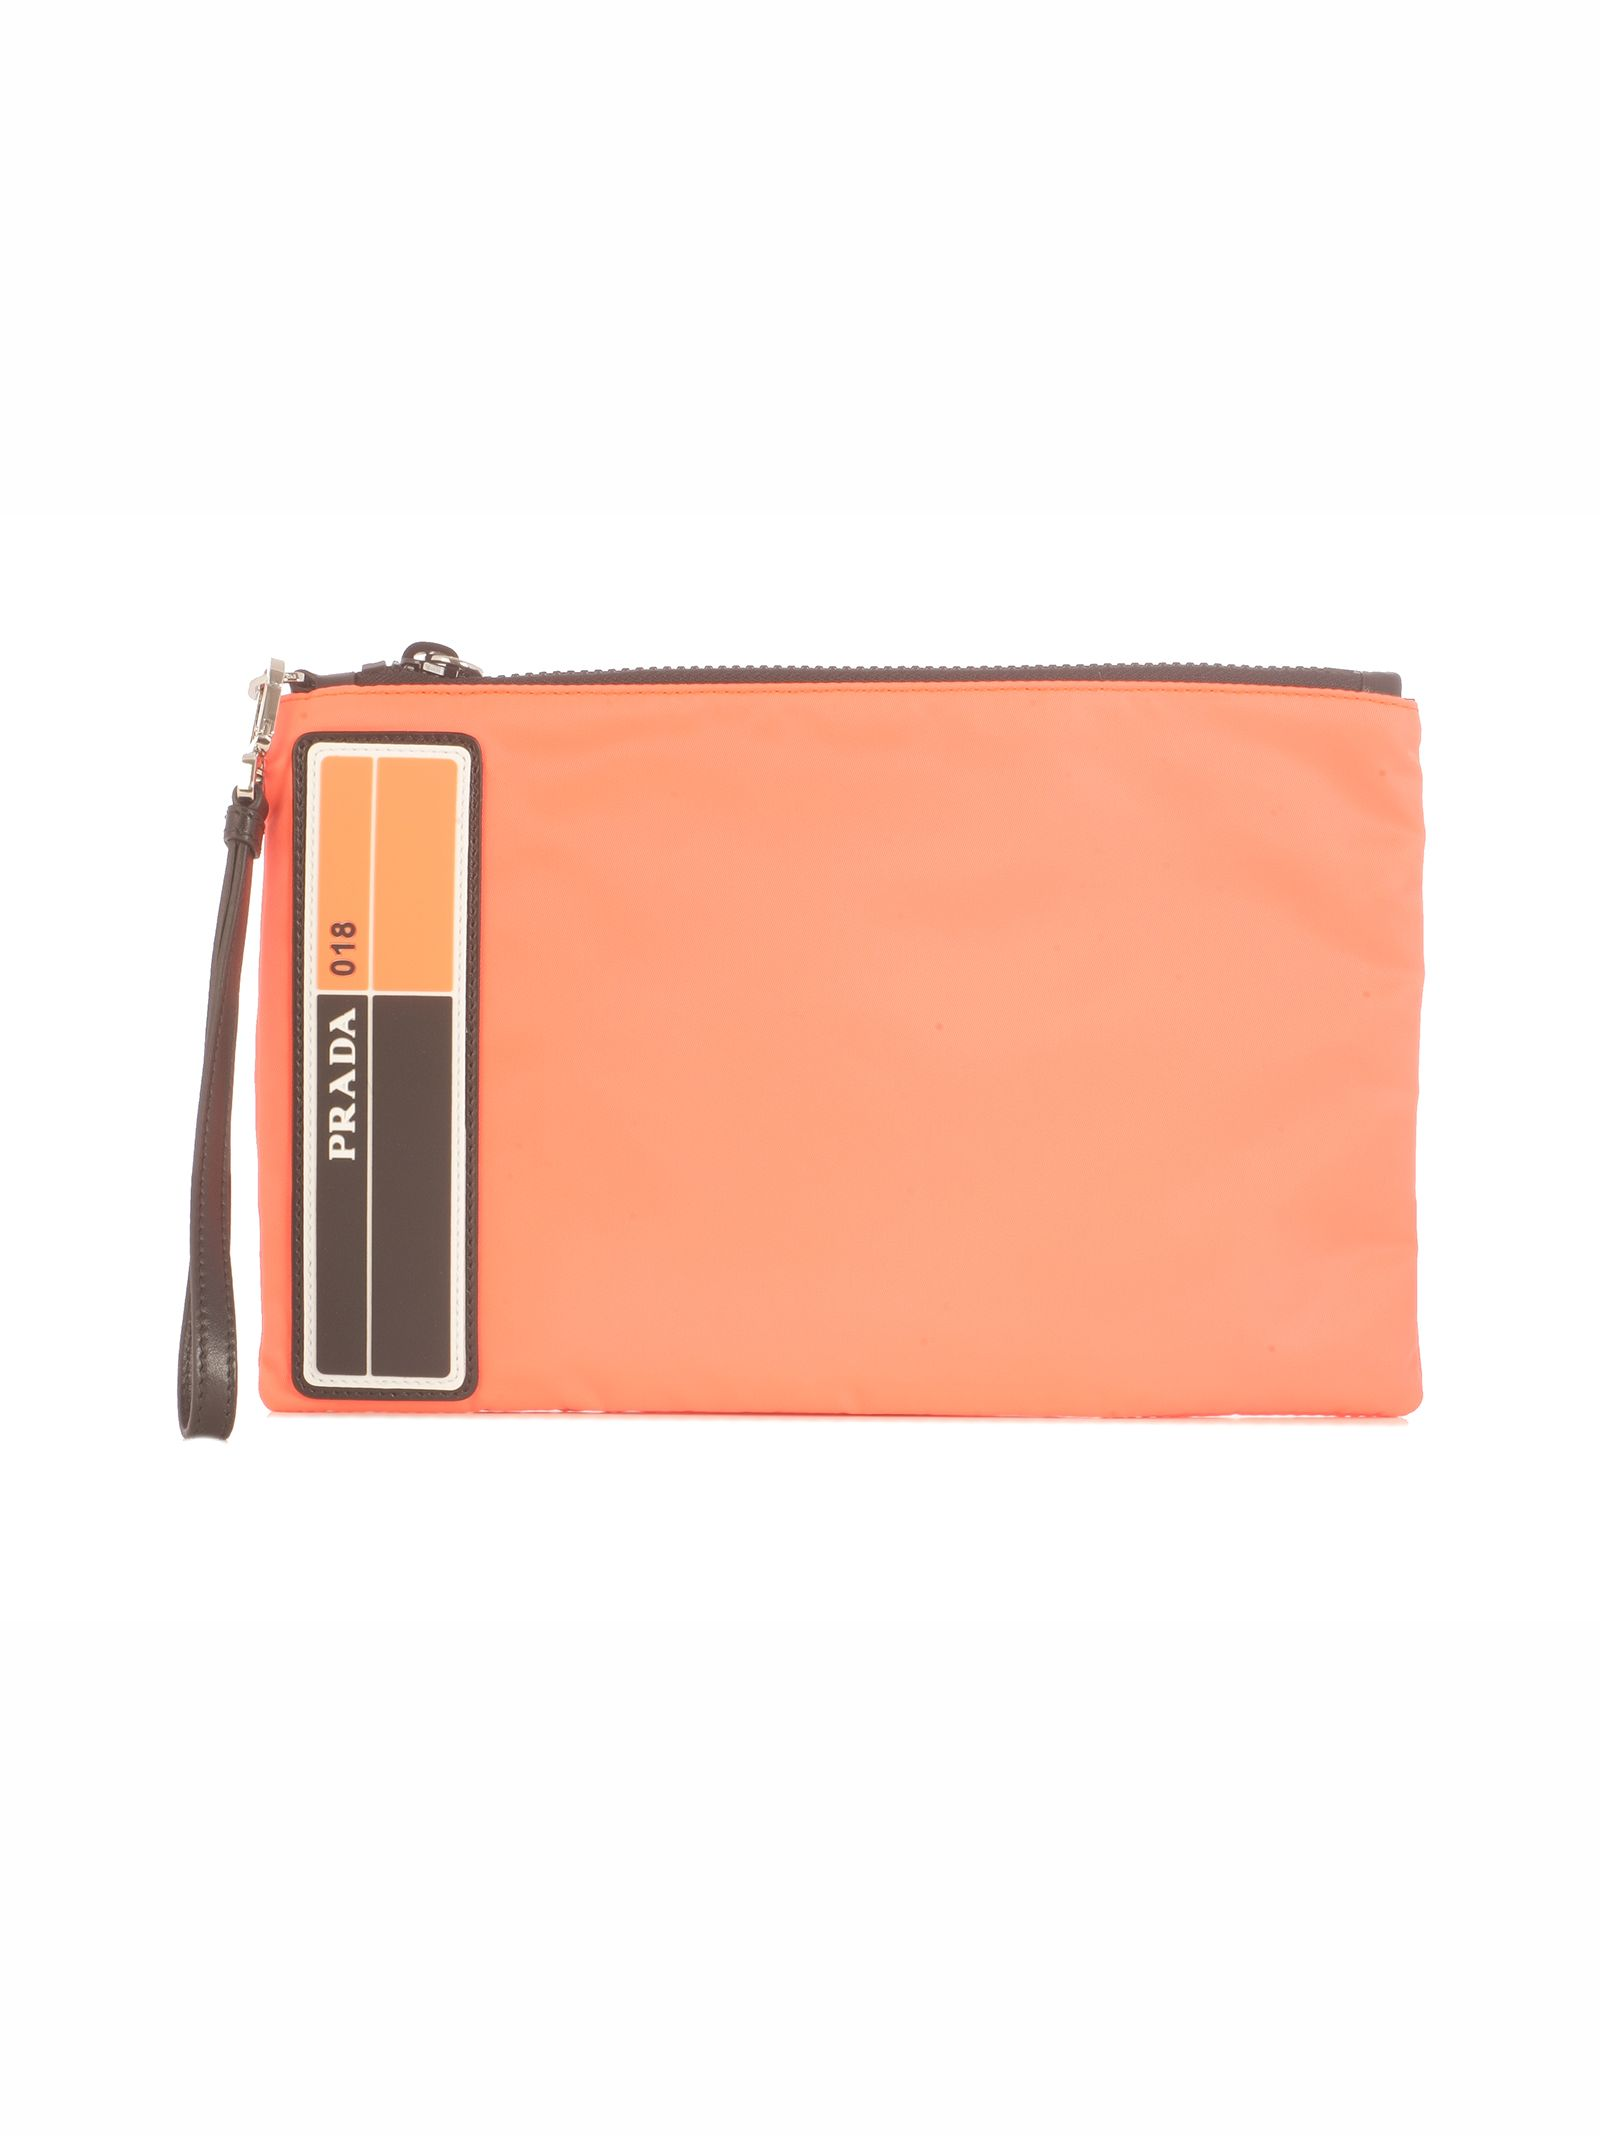 5b94c622e71834 Prada Prada New Logo Textile Clutch - Xyb Orange Fluo Black ...